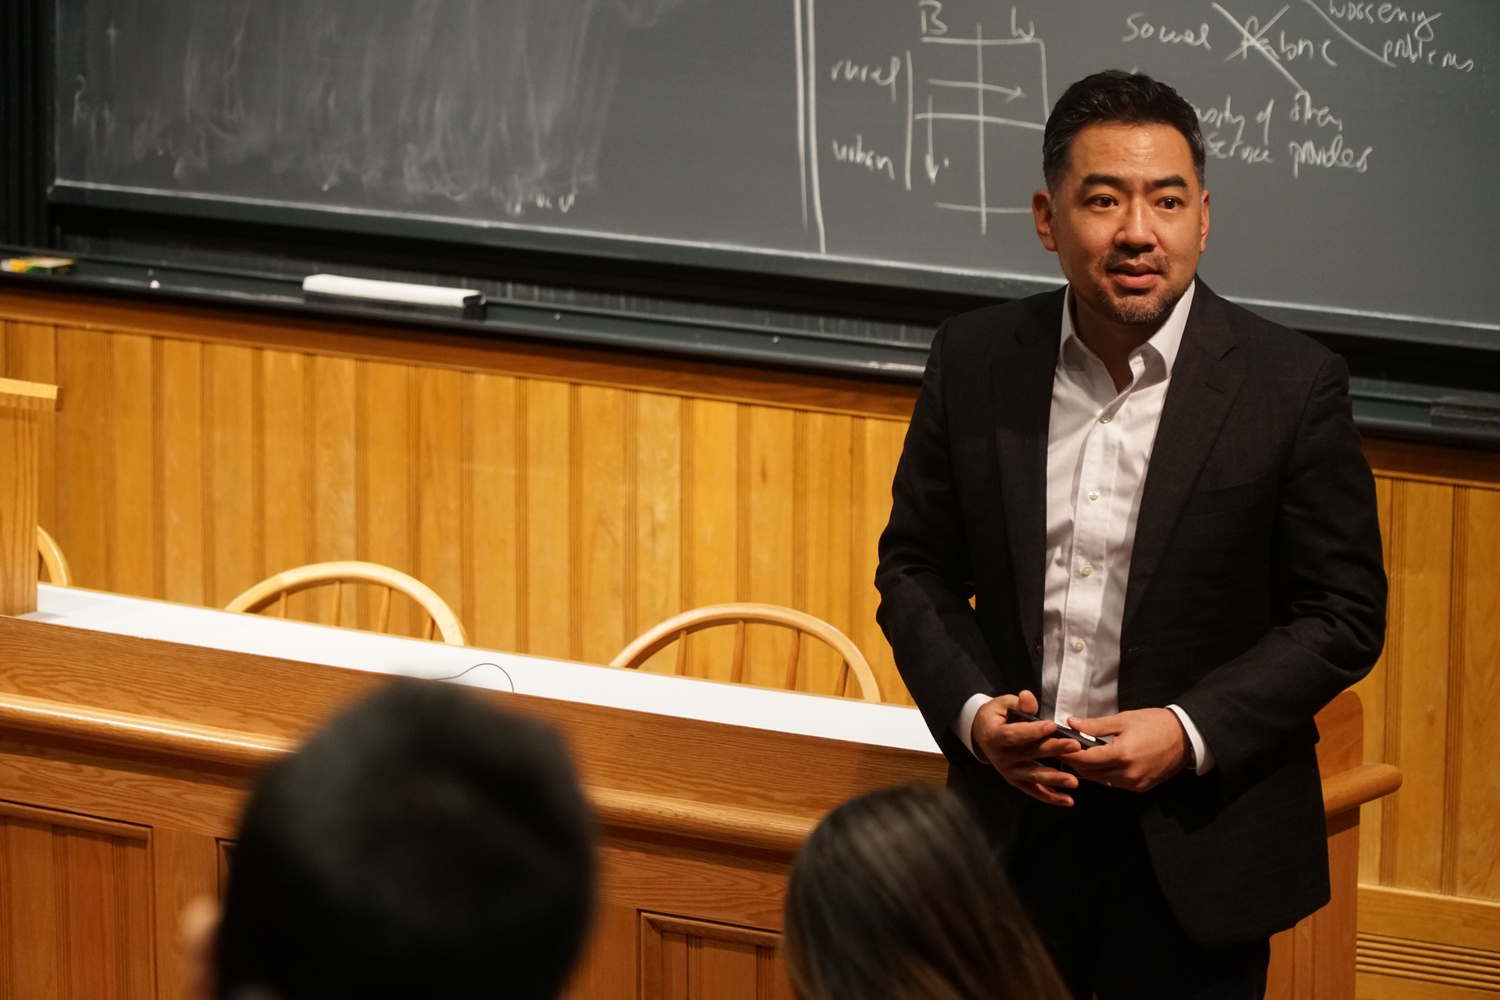 Paul Y. Chang, Assistant Professor of Sociology at Harvard University gave a lecture about the history of Korean democracy, with a discussion on the recent South Korean presidential scandal.